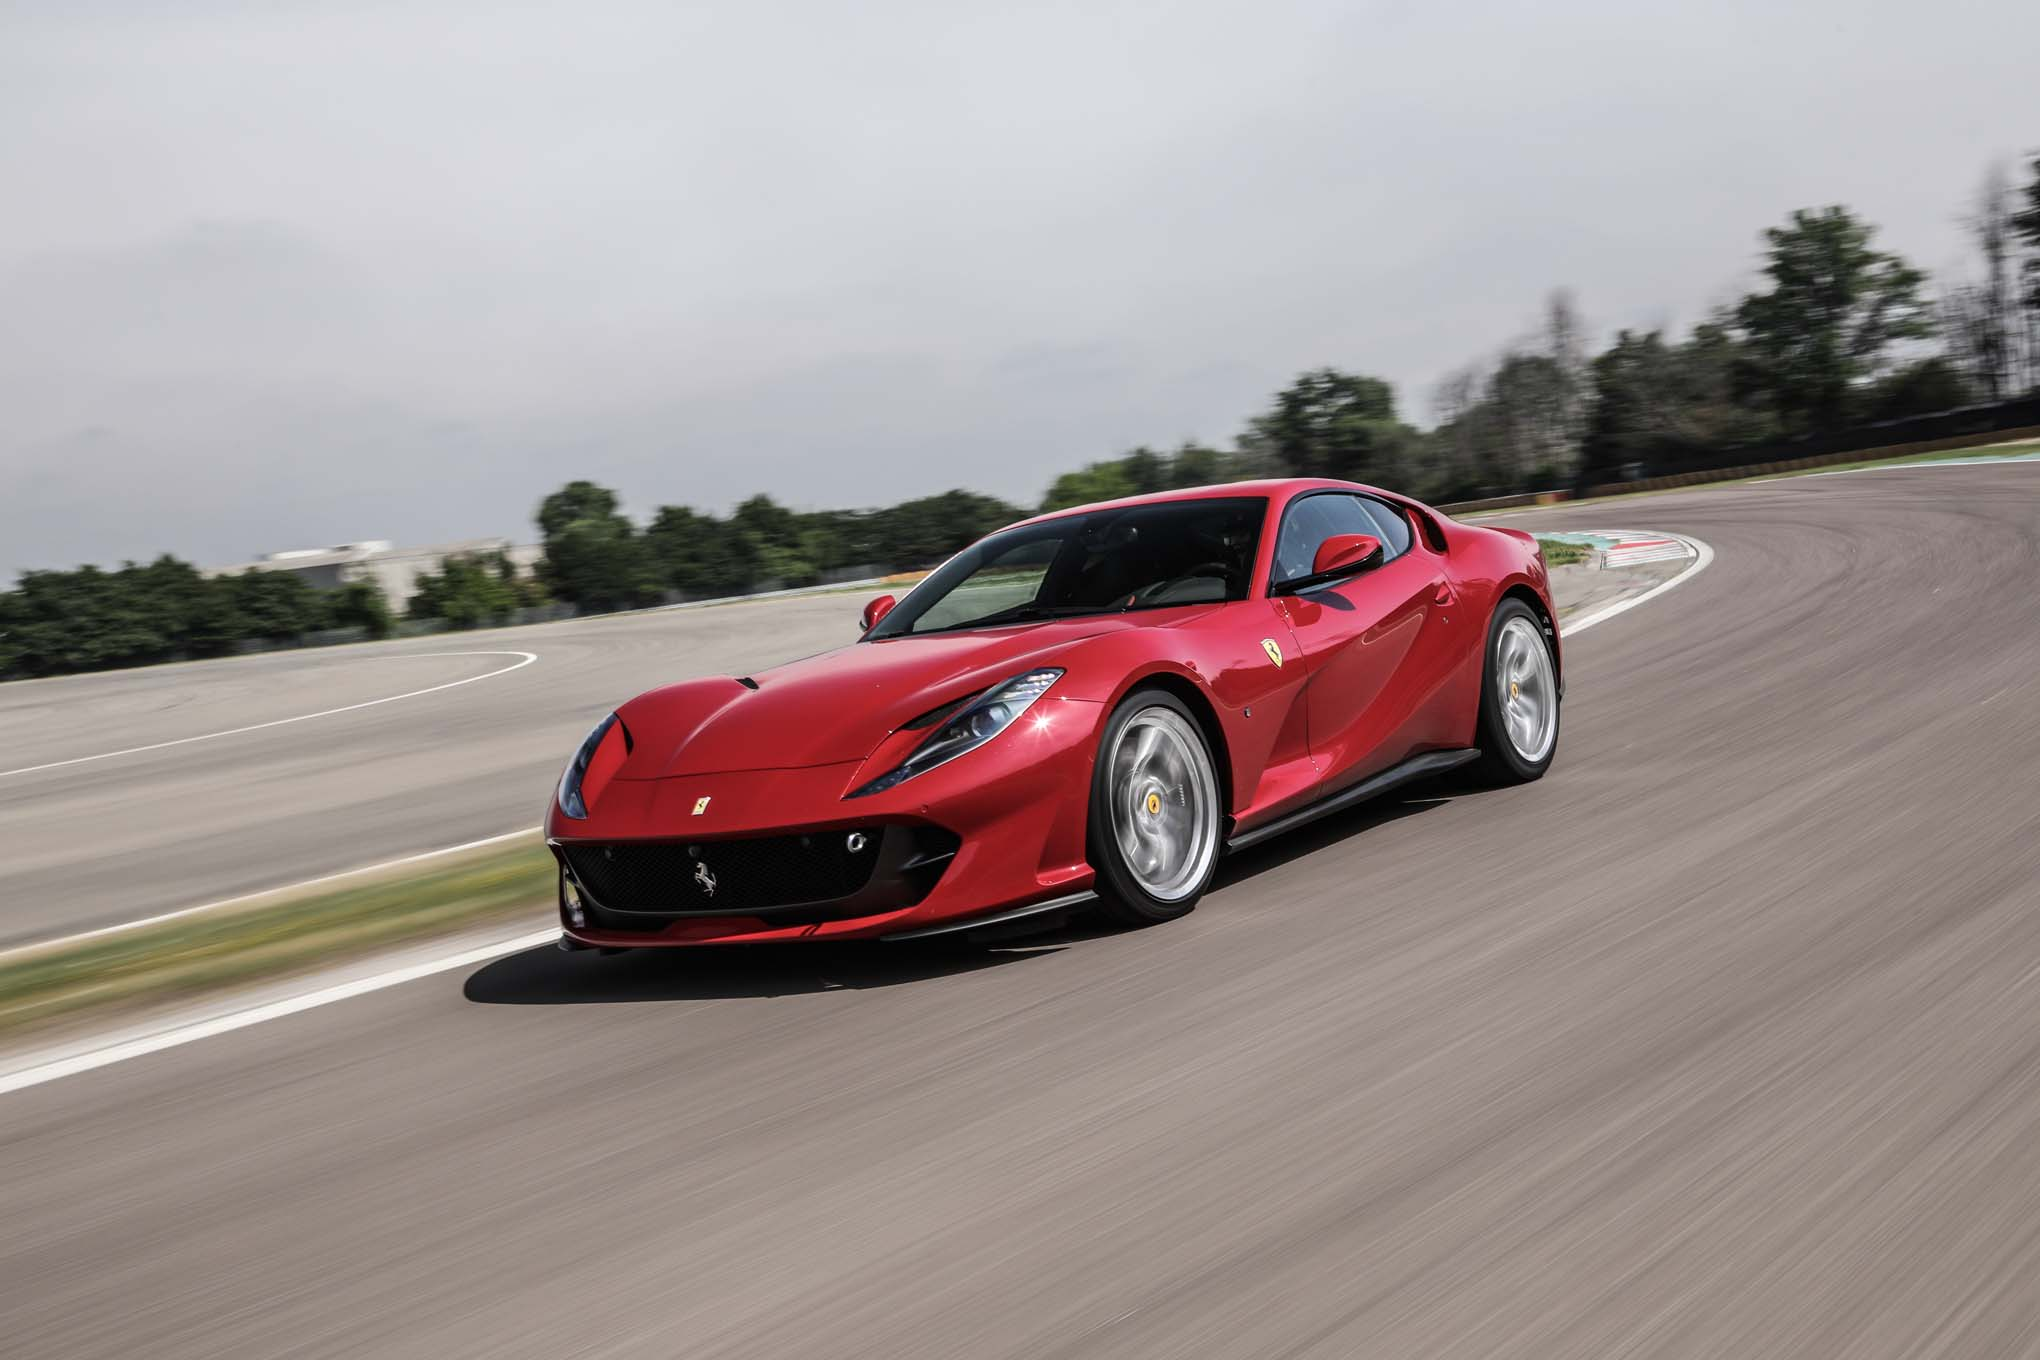 Ferrari 812 Superfast Front Three Quarter In Motion